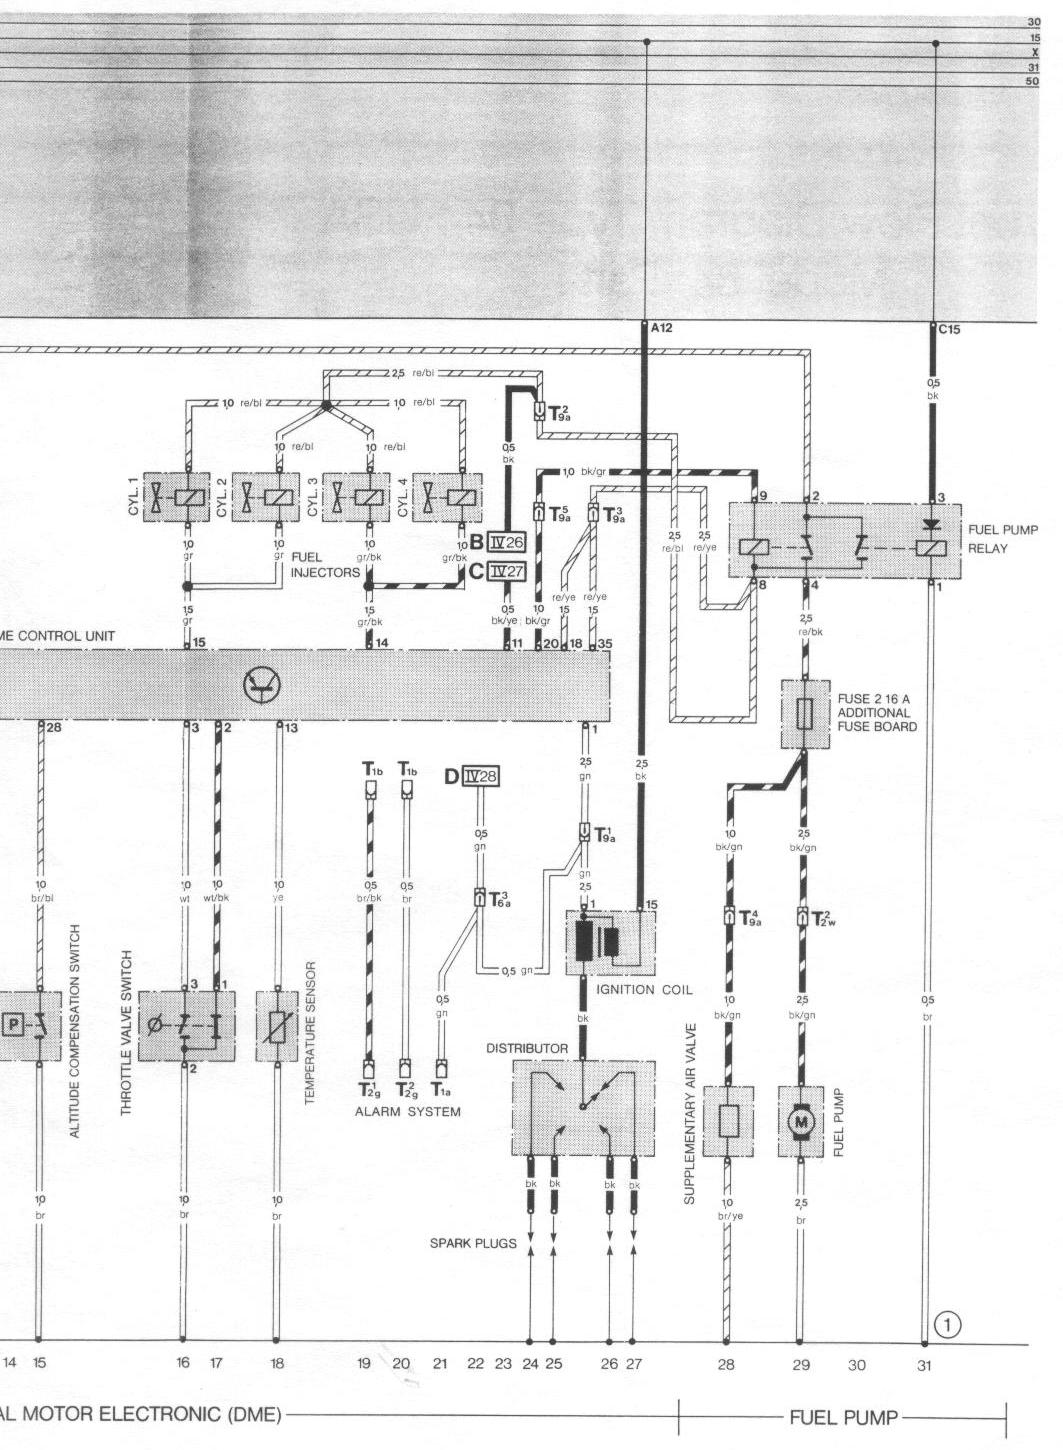 944_84_1_2 pelican parts porsche 924 944 electrical diagrams 1983 porsche 944 fuse box diagram at mr168.co